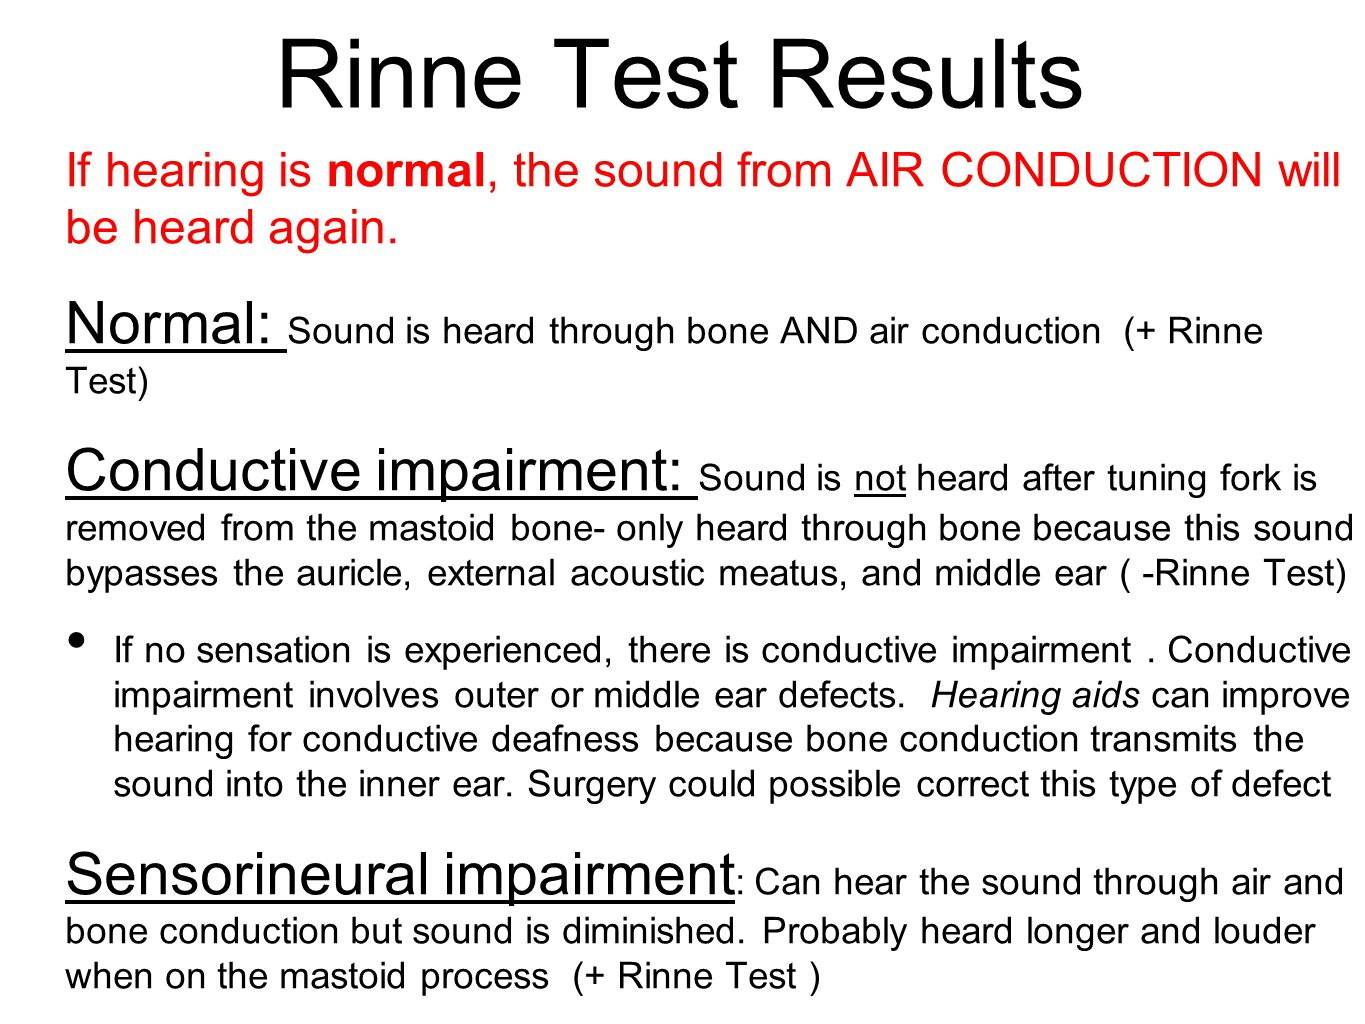 Rinne Test Results If hearing is normal, the sound from AIR CONDUCTION will be heard again.